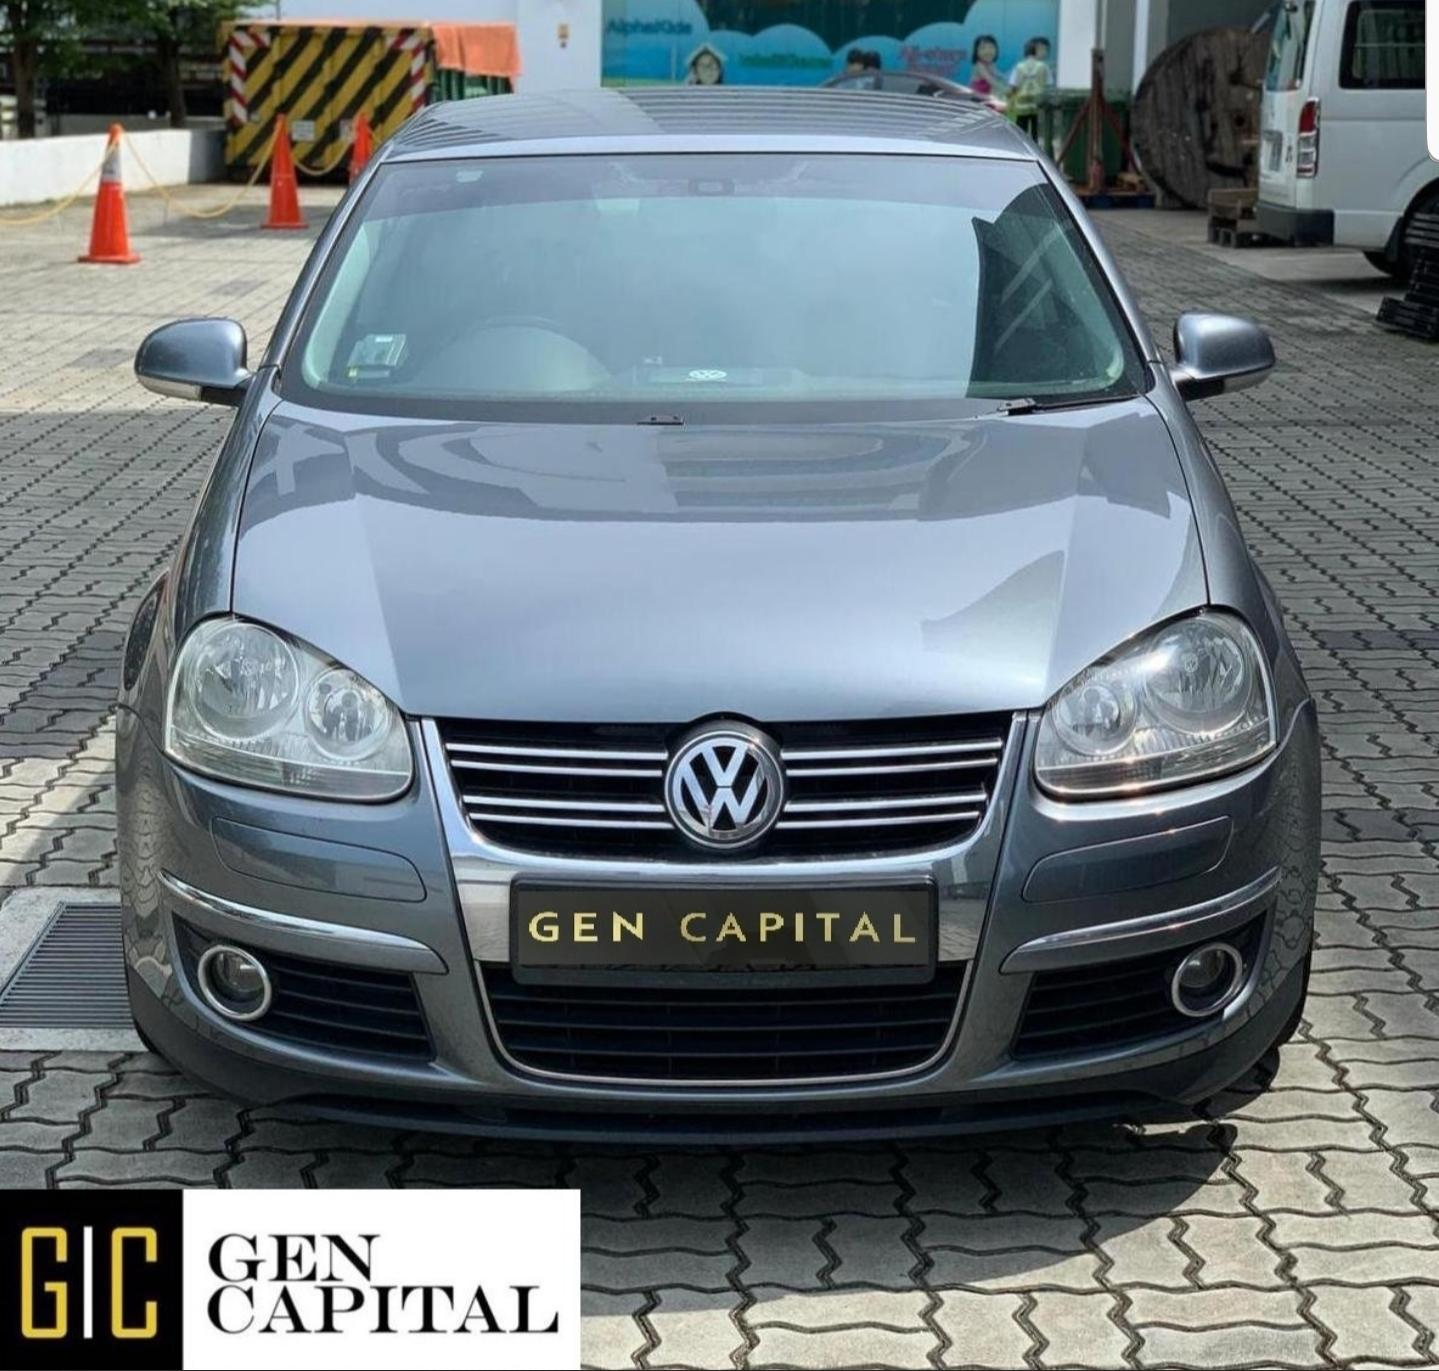 Volkswagen Jetta 1.4A TSI @ Best rates, full servicing provided!